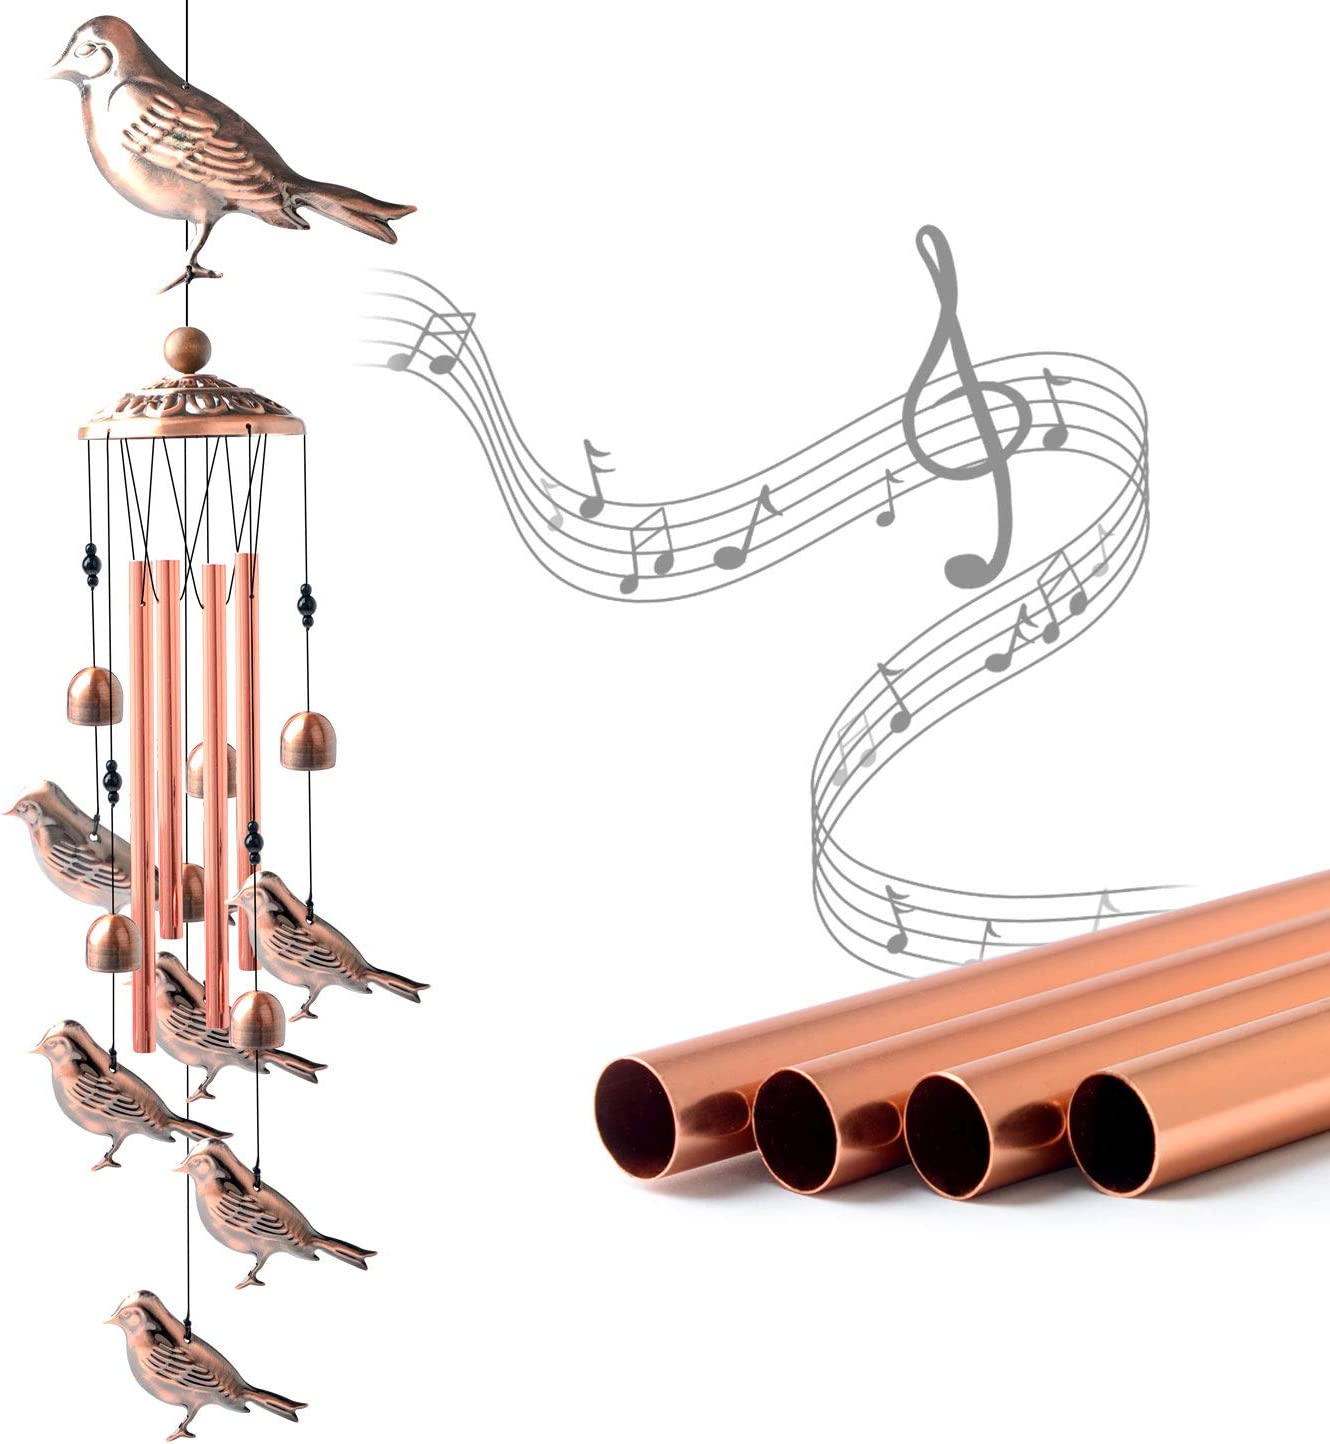 Copper Wind Chime Wind Chimes Outdoor Memorial Wind Chimes Gifts for Grandma Thanksgiving Gifts Garden Gift Garden Yard Decor Gifts for mom Wind Bell JOBOSI Tortoise Wind Chimes